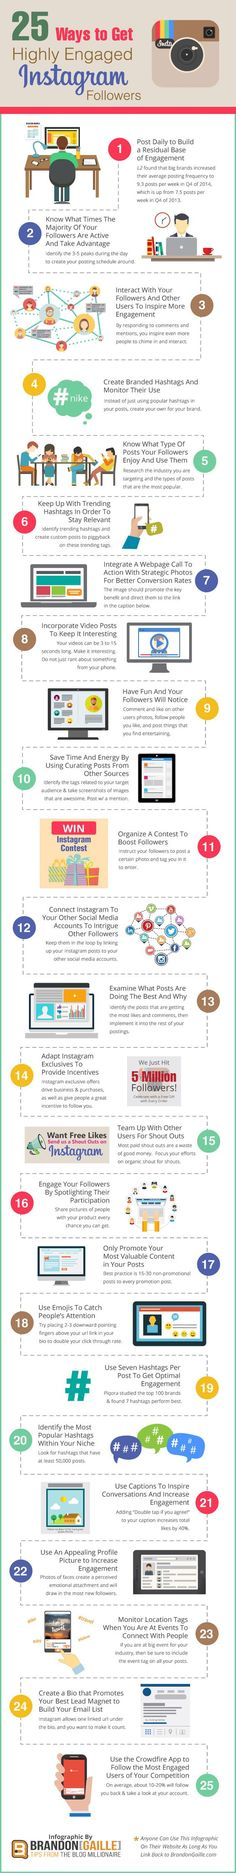 Affiliate Marketing Tips So You Can Get Started. Various web marketing tactics are used in order to get a job finished. Marketing Digital, Marketing Mail, Marketing Trends, Marketing Online, Inbound Marketing, Content Marketing, Internet Marketing, Affiliate Marketing, Marketing Software